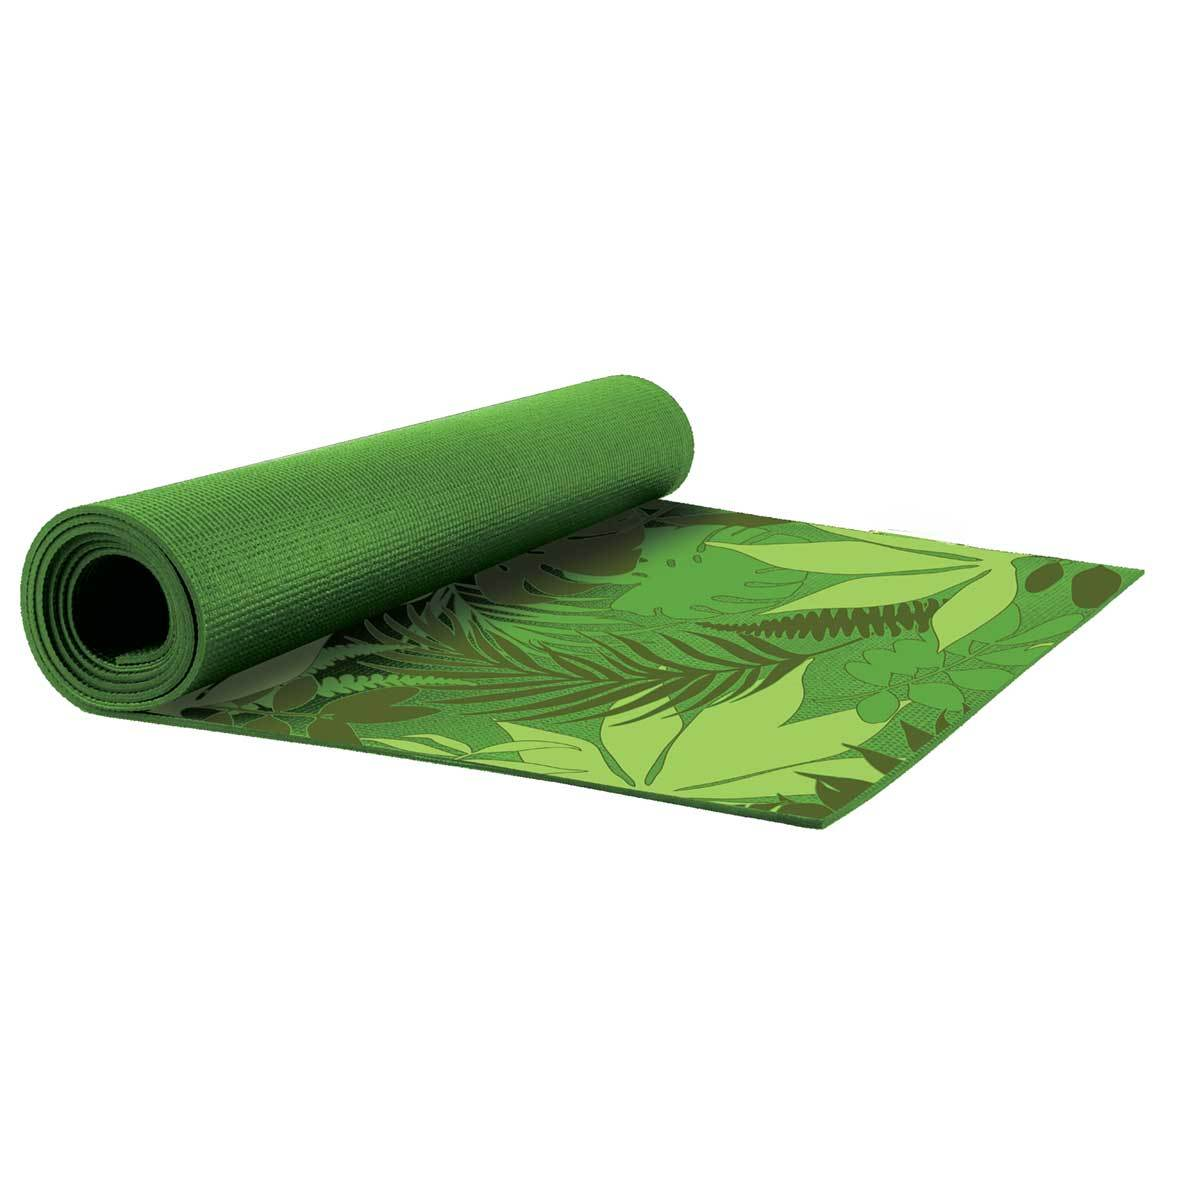 happiness custom printed image mat is home your yogamatic own laptopdemo yoga mats a from making